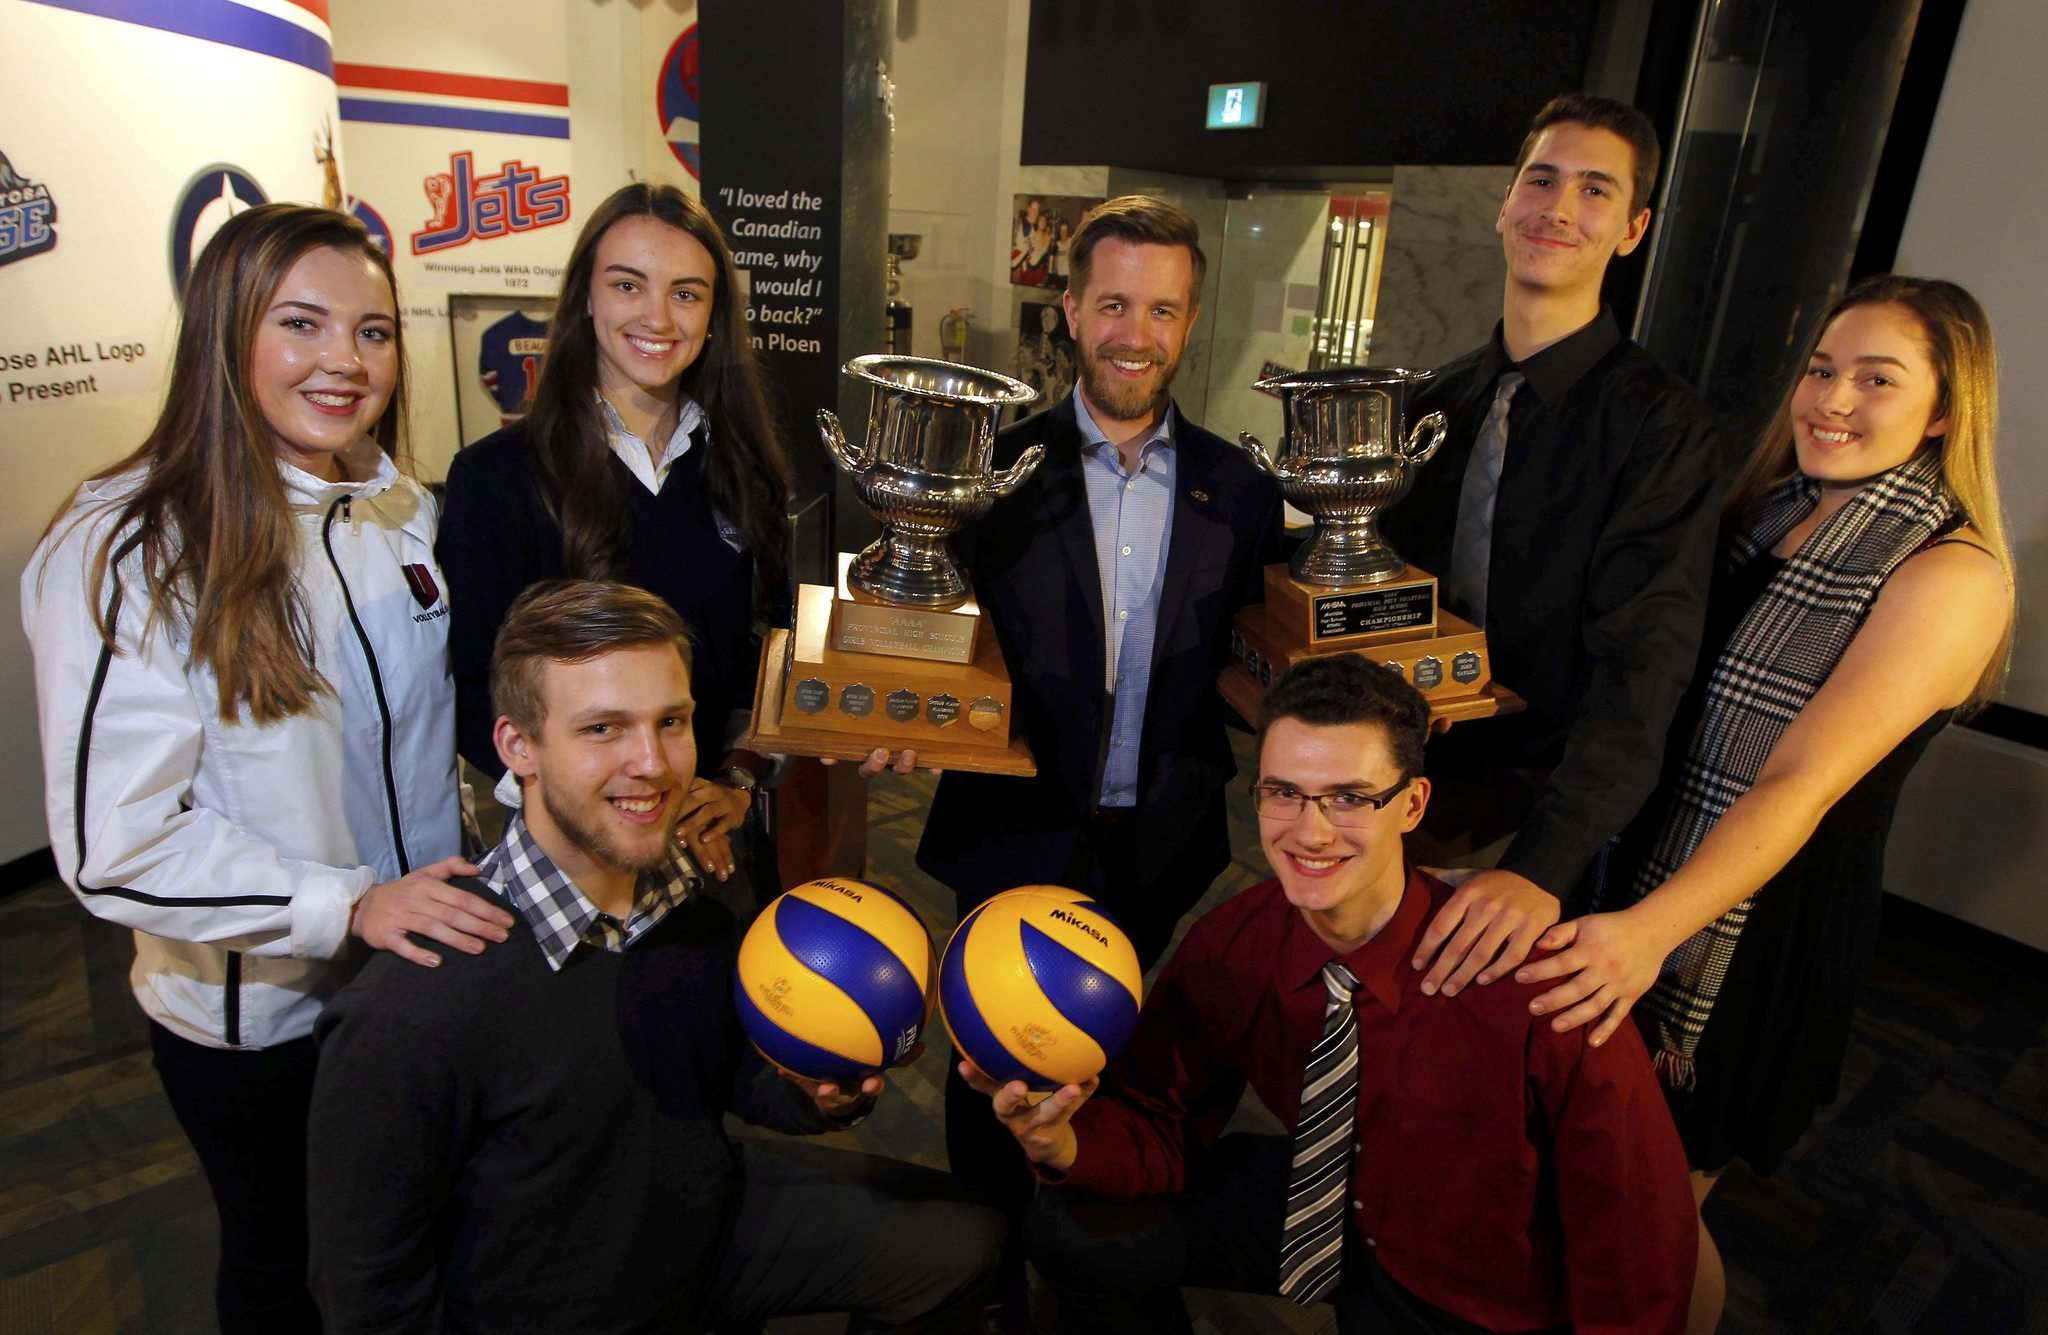 BORIS MINKEVICH / WINNIPEG FREE PRESS</p><p>Representatives for many of the teams participating in the AAAA High School Volleyball Championships 'final fours' pose with the trophies. In the back, from left to right: Kelli Beatty (Westwood), Jenna Cross (St. Mary's), Chad falk and Owen Schwartz (Selkirk), Maegan Balagus (Selkirk). In front: Ryan Arcand (Dakota) and Justice Lesuk (Miles Mac).</p>